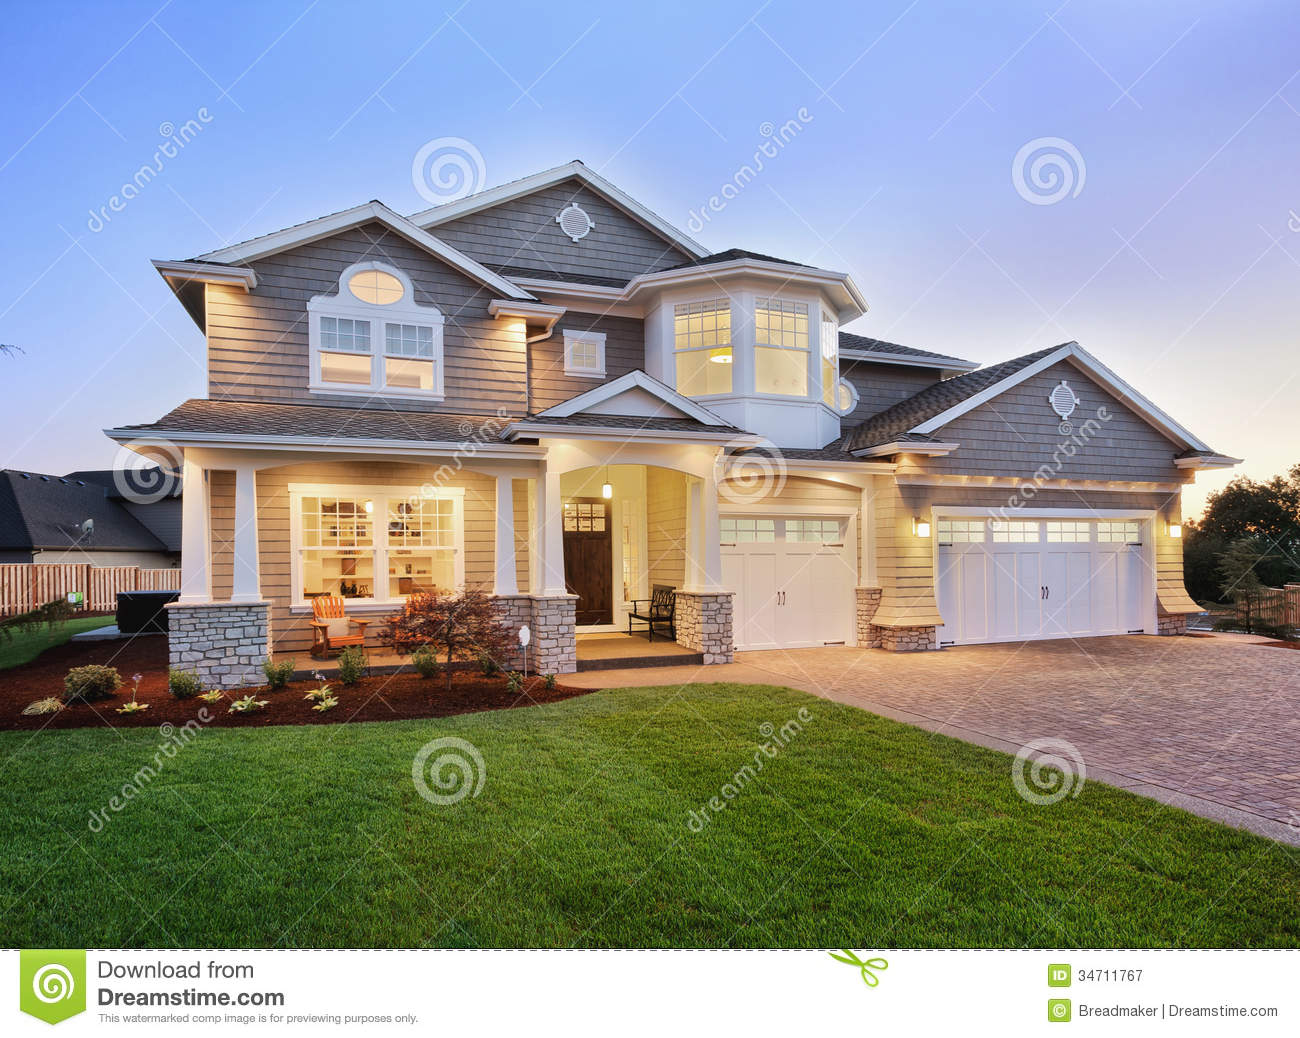 Beautiful New Home Exterior Royalty Free Stock Photography - Image ...: www.dreamstime.com/royalty-free-stock-photography-beautiful-new...